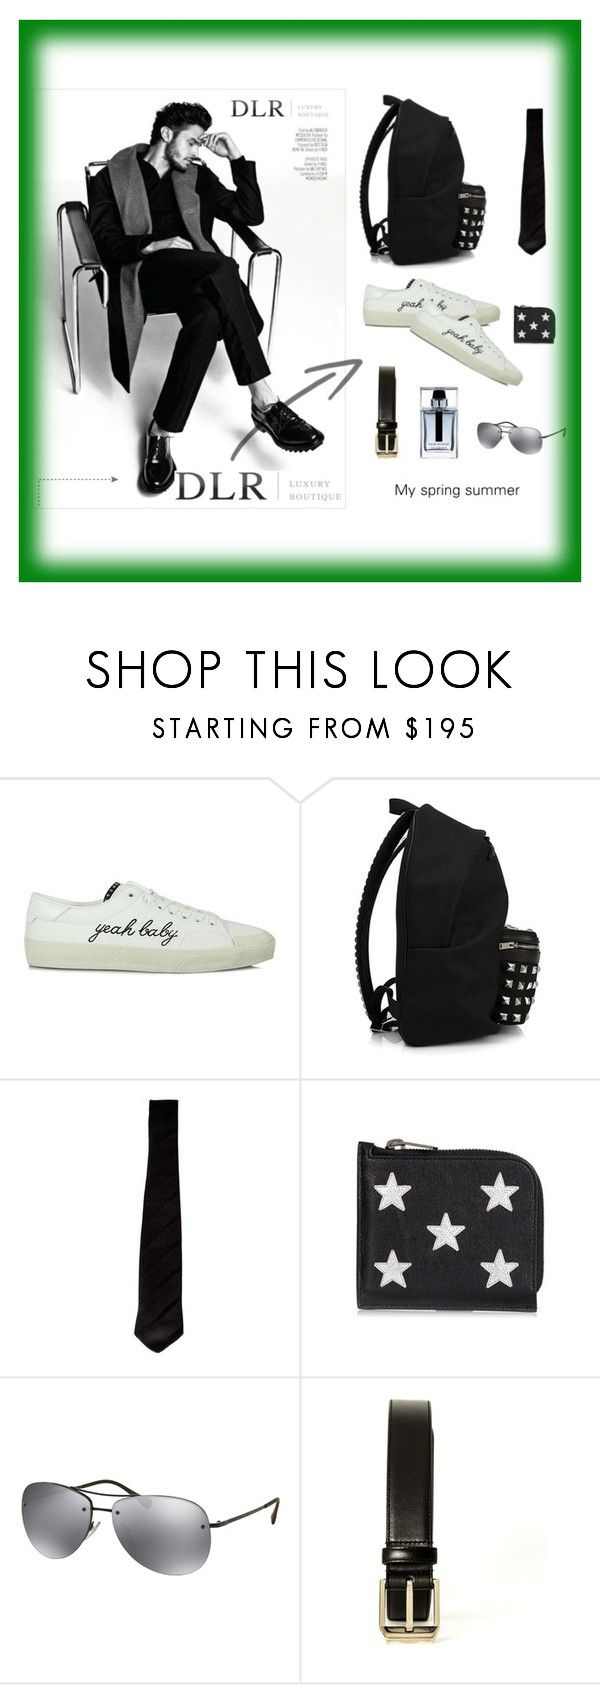 """YEAH BABY"" by dlrluxuryboutique ❤ liked on Polyvore featuring Yves Saint Laurent, Prada, Christian Dior, men's fashion and menswear"